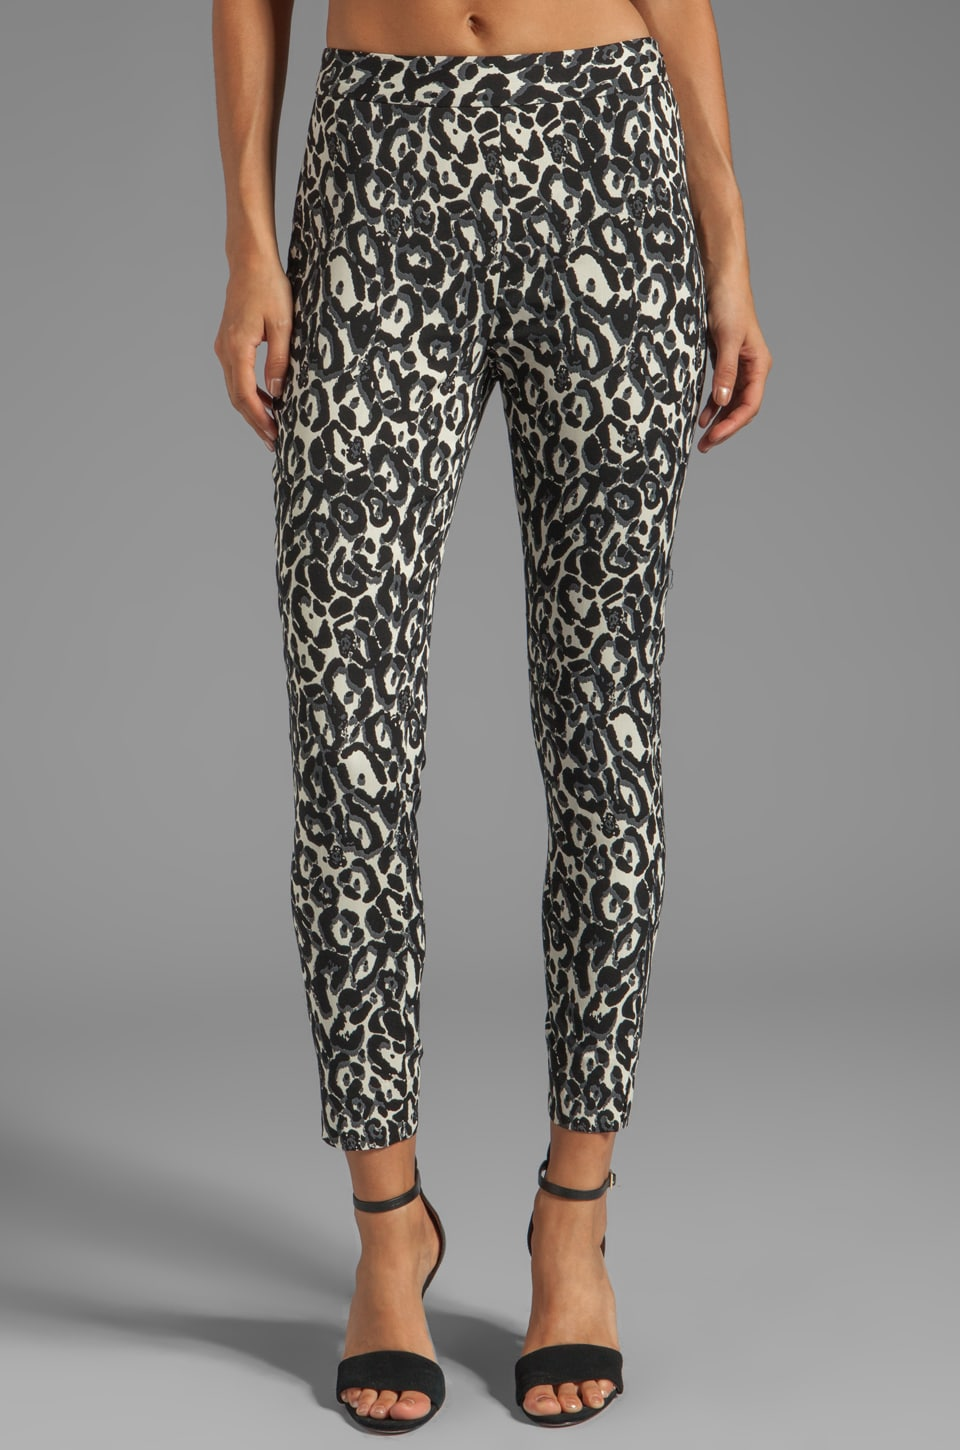 MILLY Bailey Slim Pant in Multi